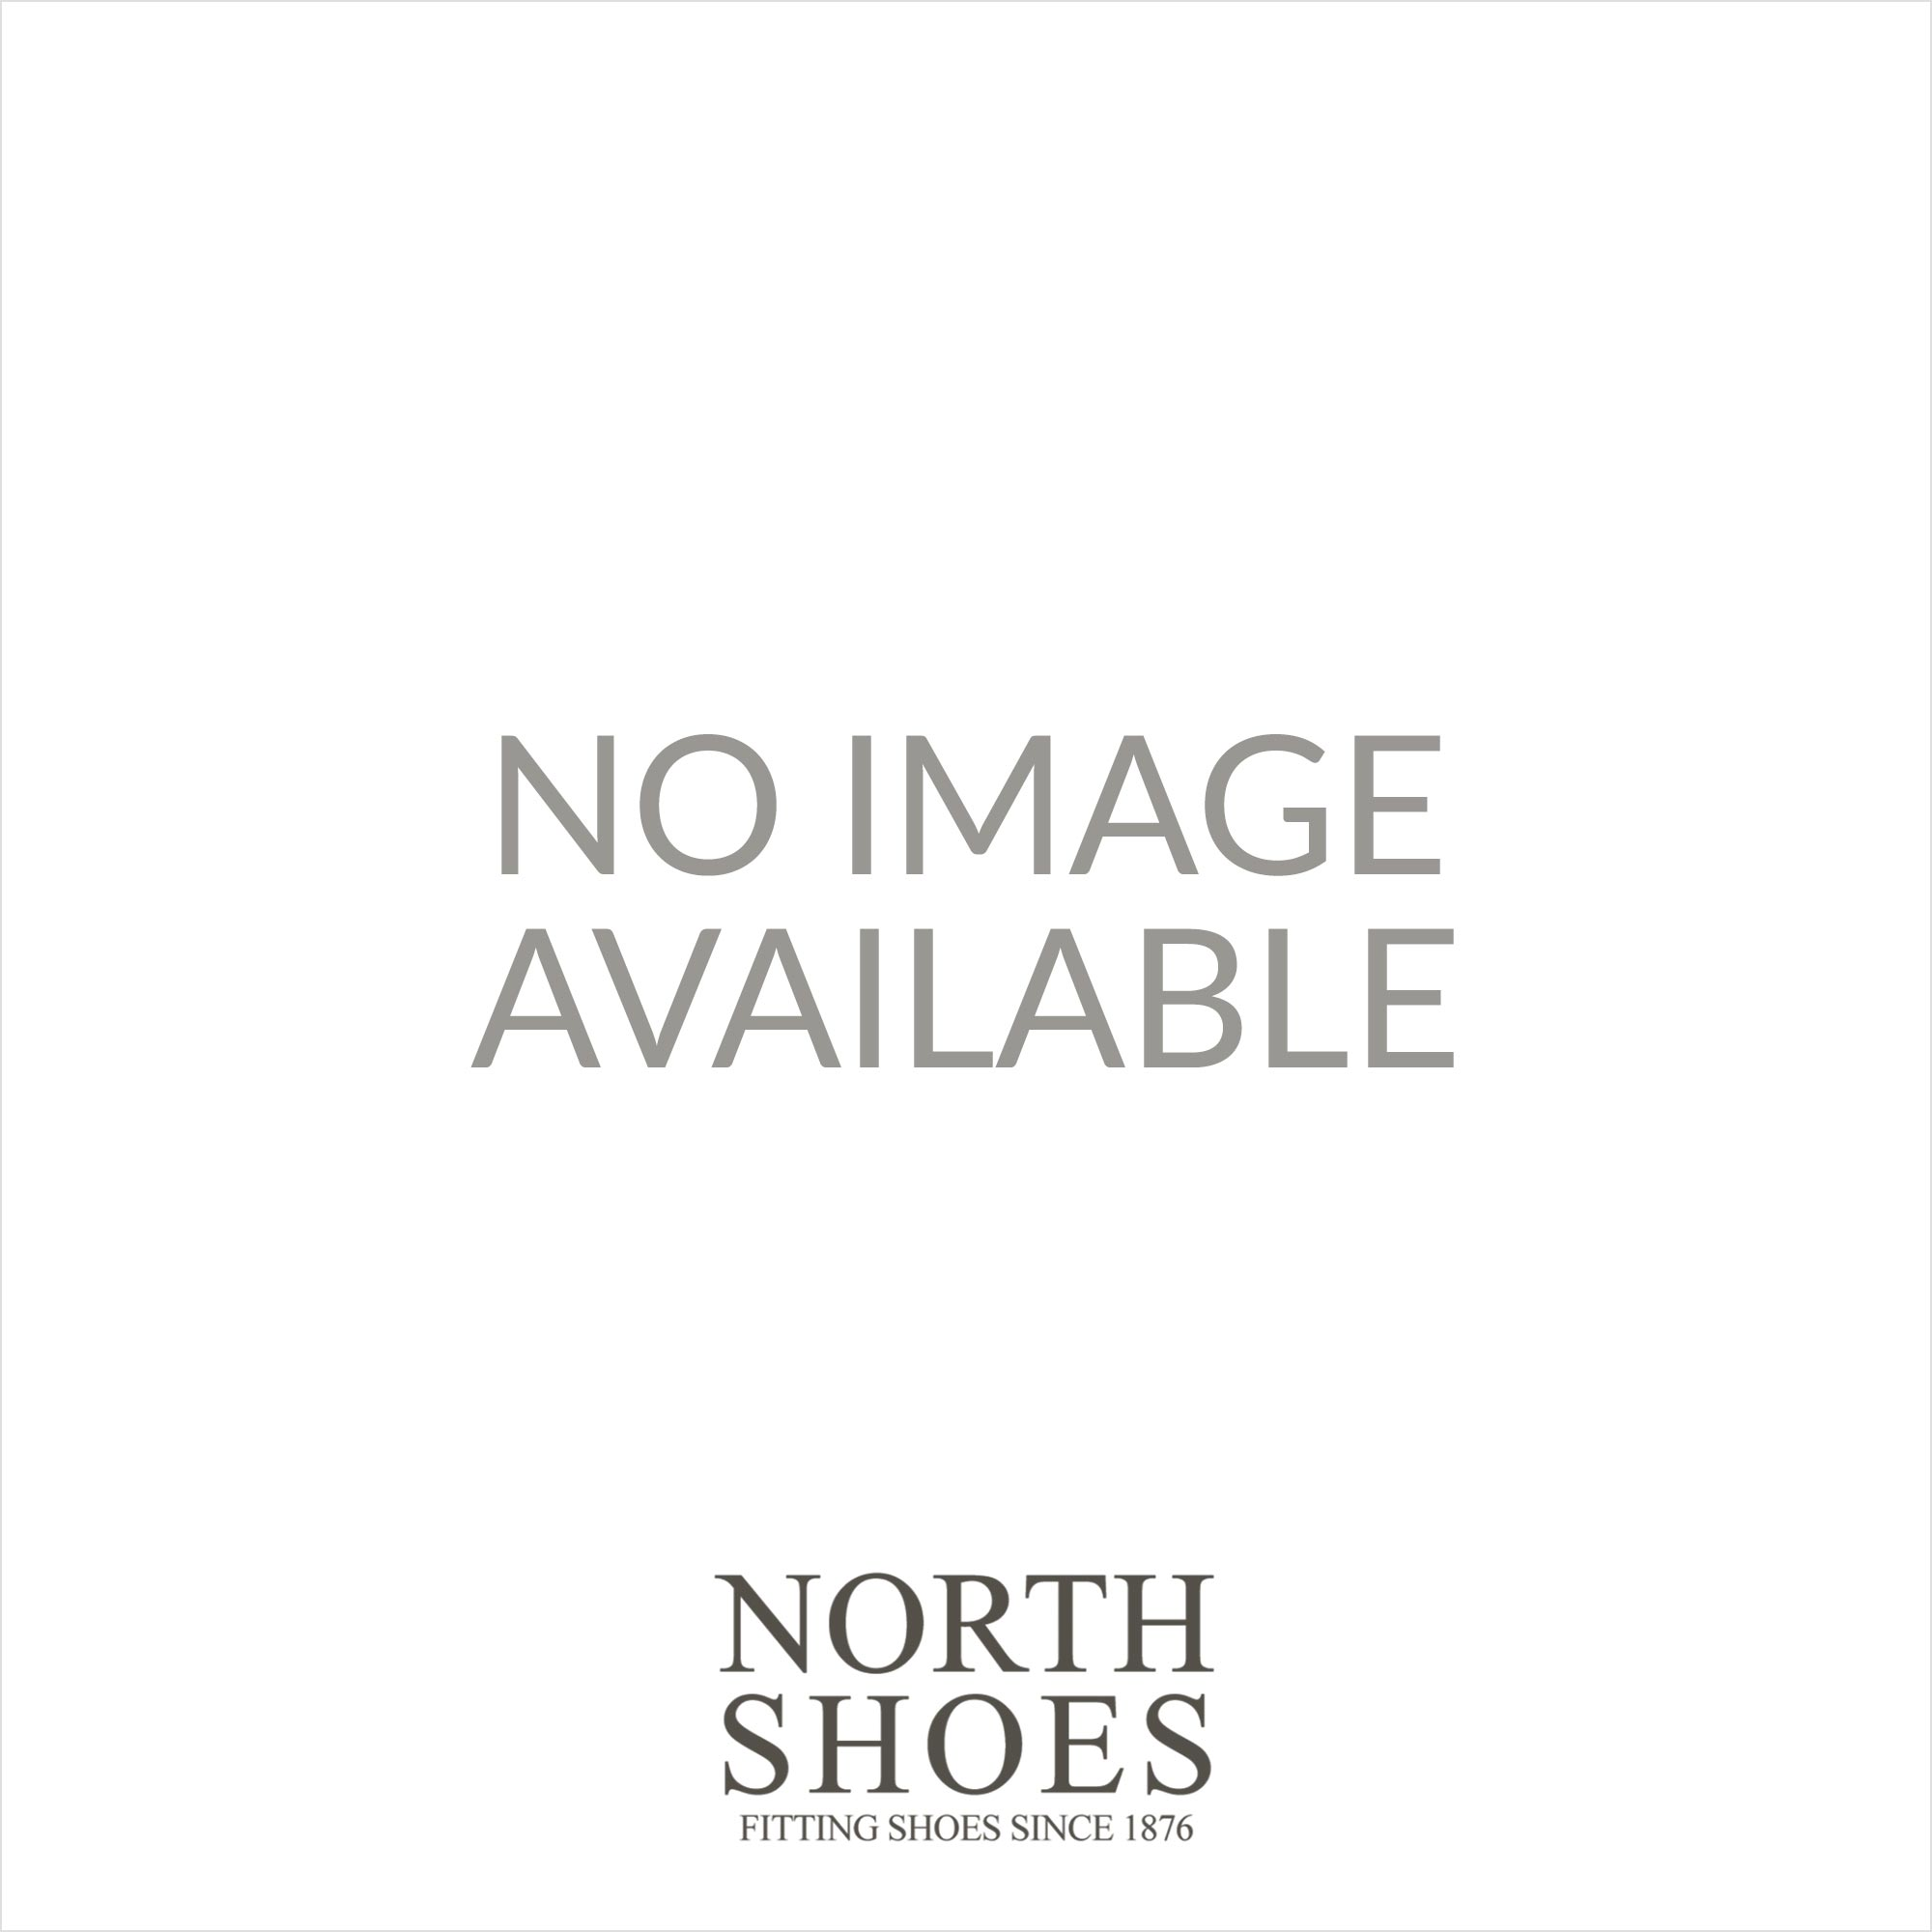 b3c140565304b Rieker Doris 53732-00 Black Patent/Leather Womens Slip On Loafer Shoe -  Rieker from North Shoes UK